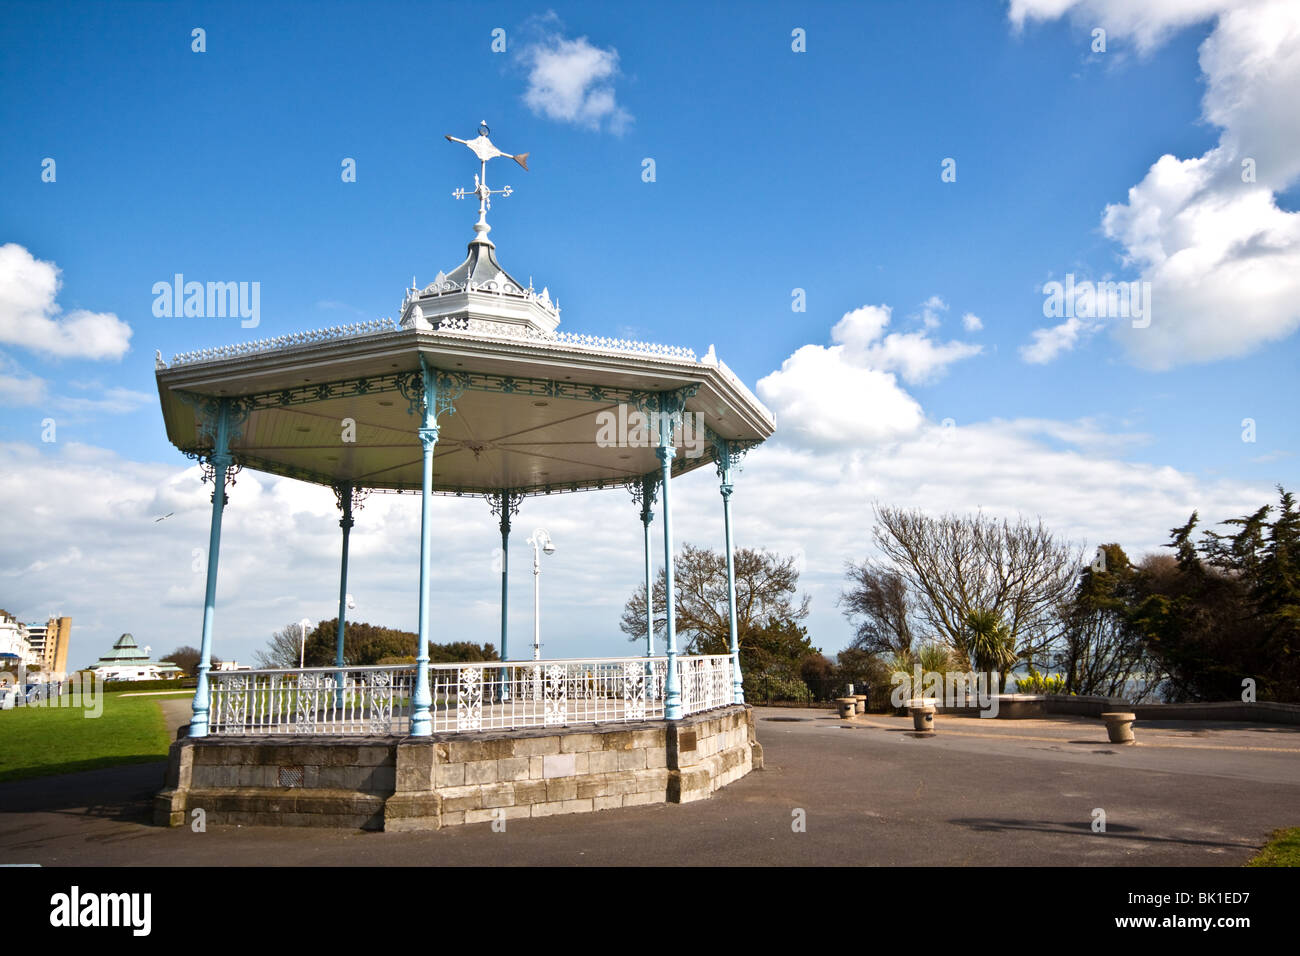 Folkestone Bandstand on the Leas - Stock Image